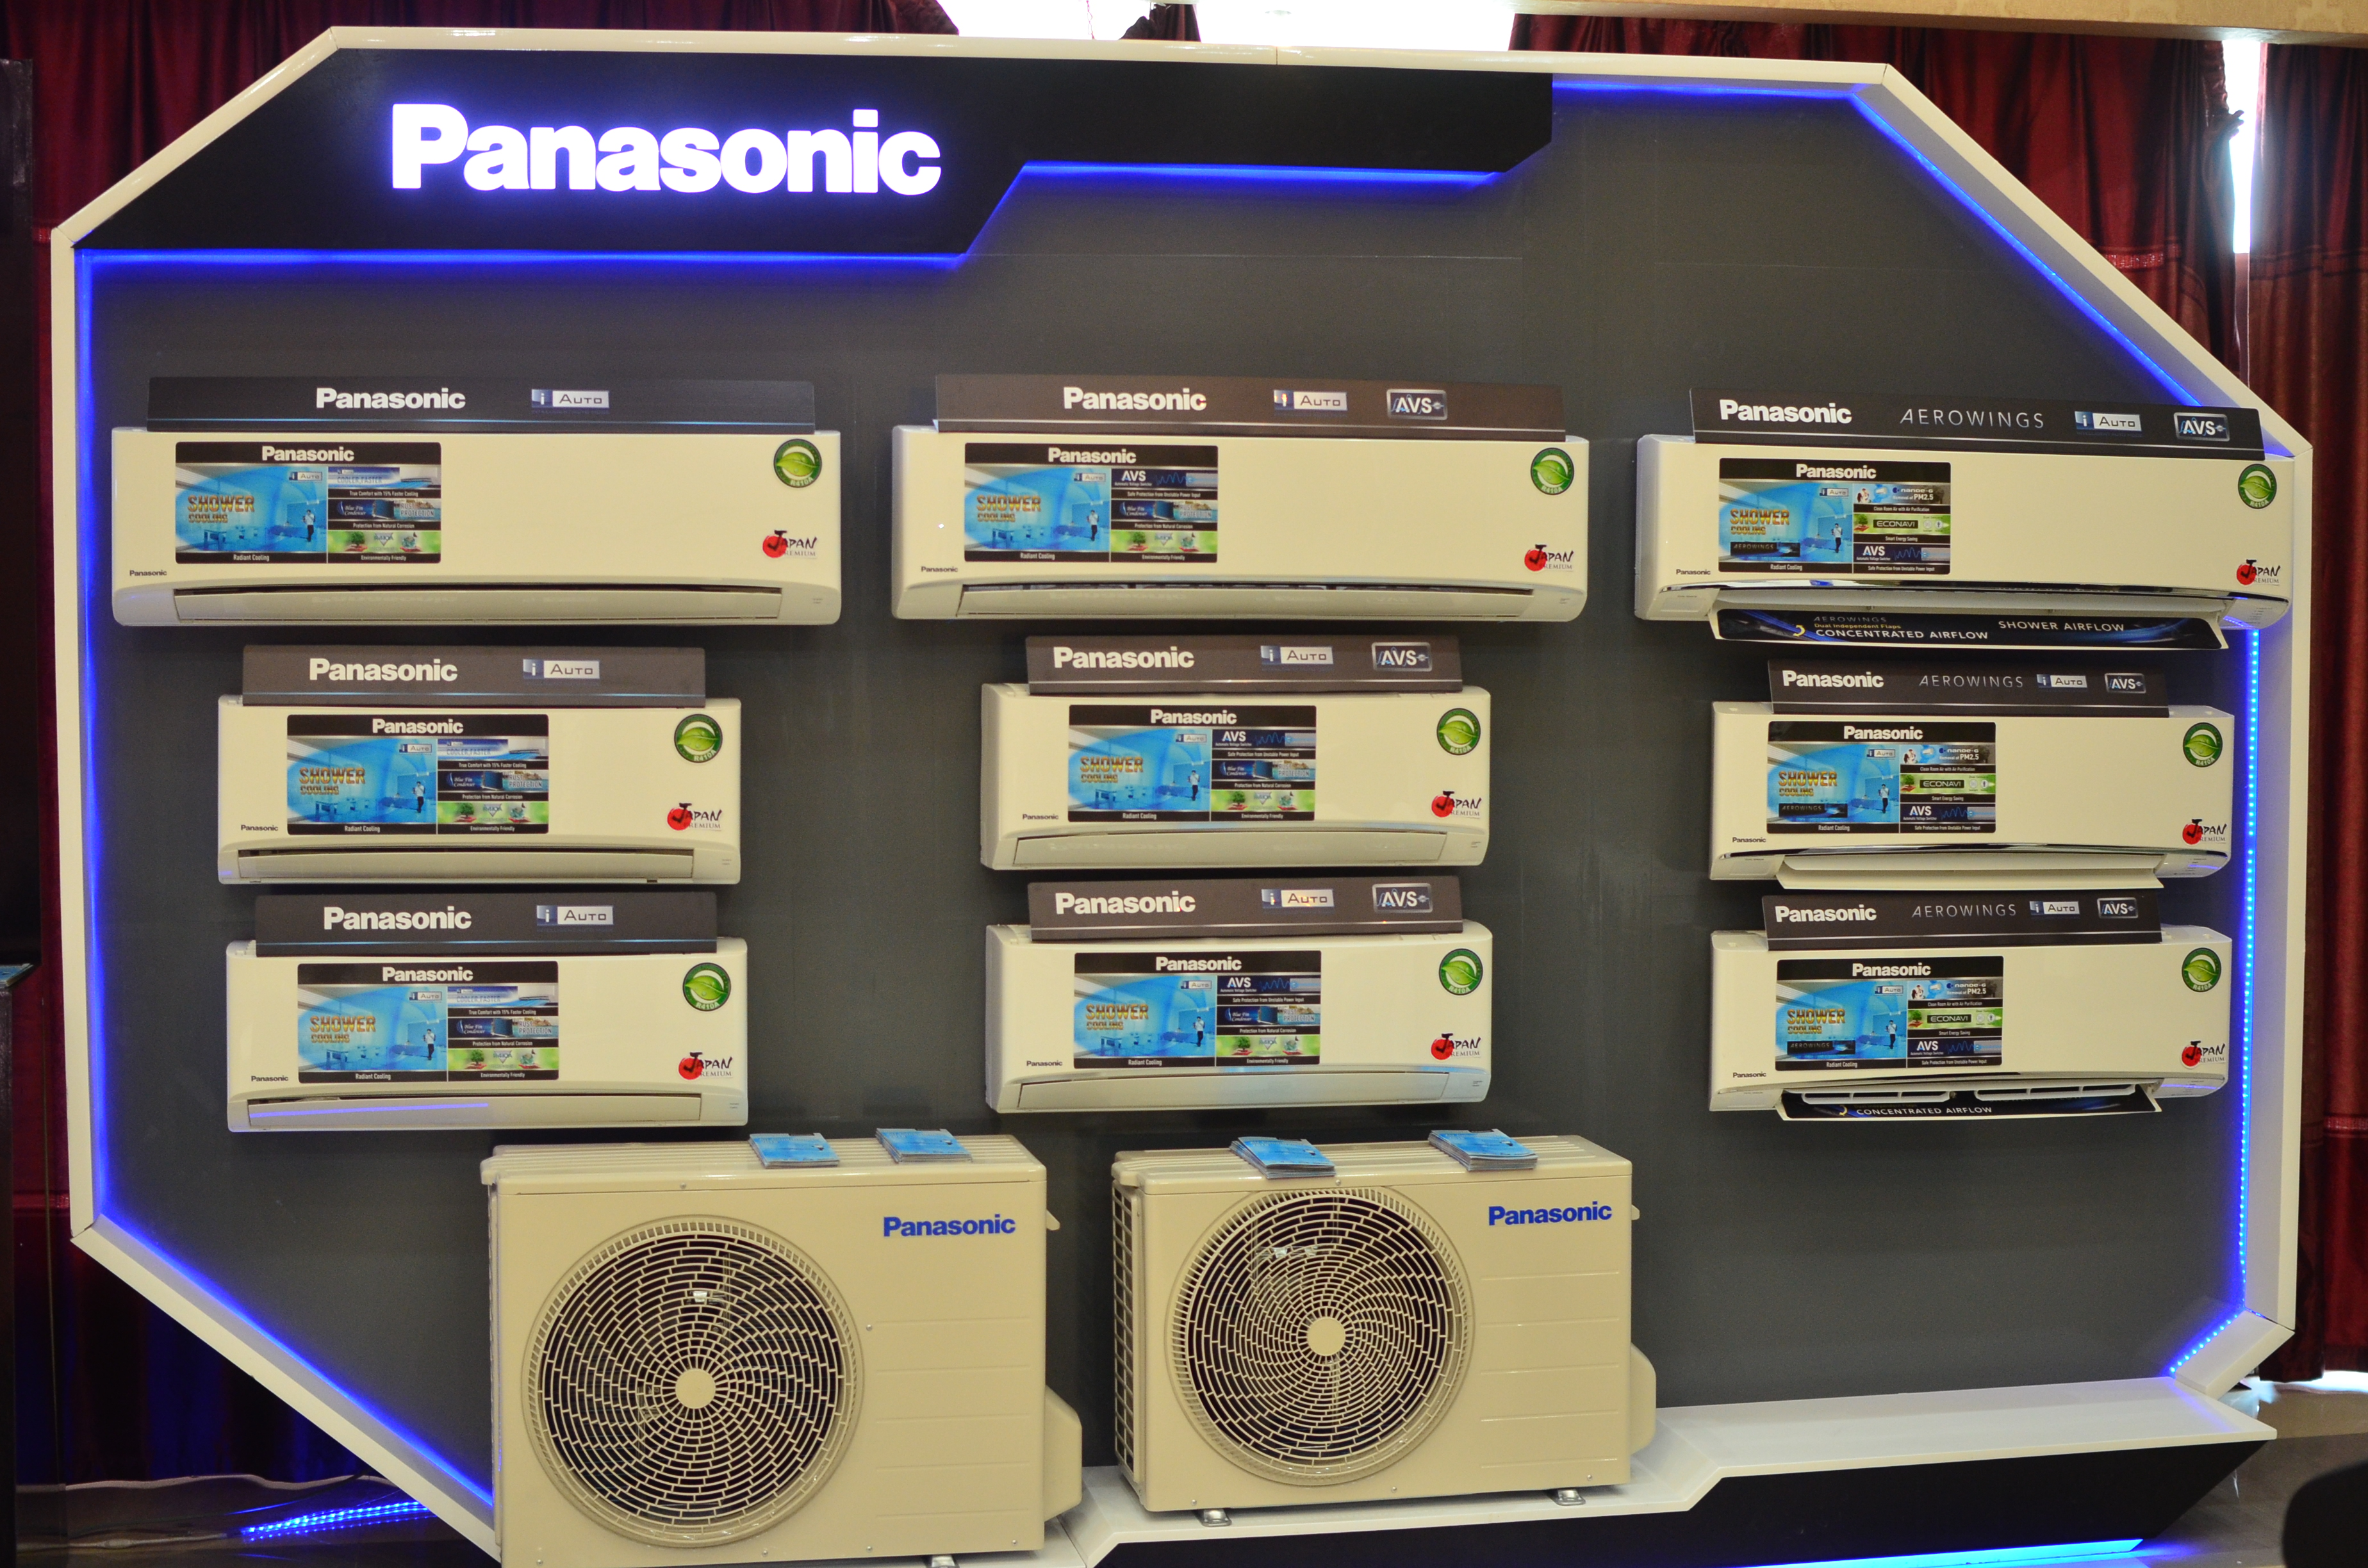 Panasonic Launches New Shower Cooling Aerowings Air